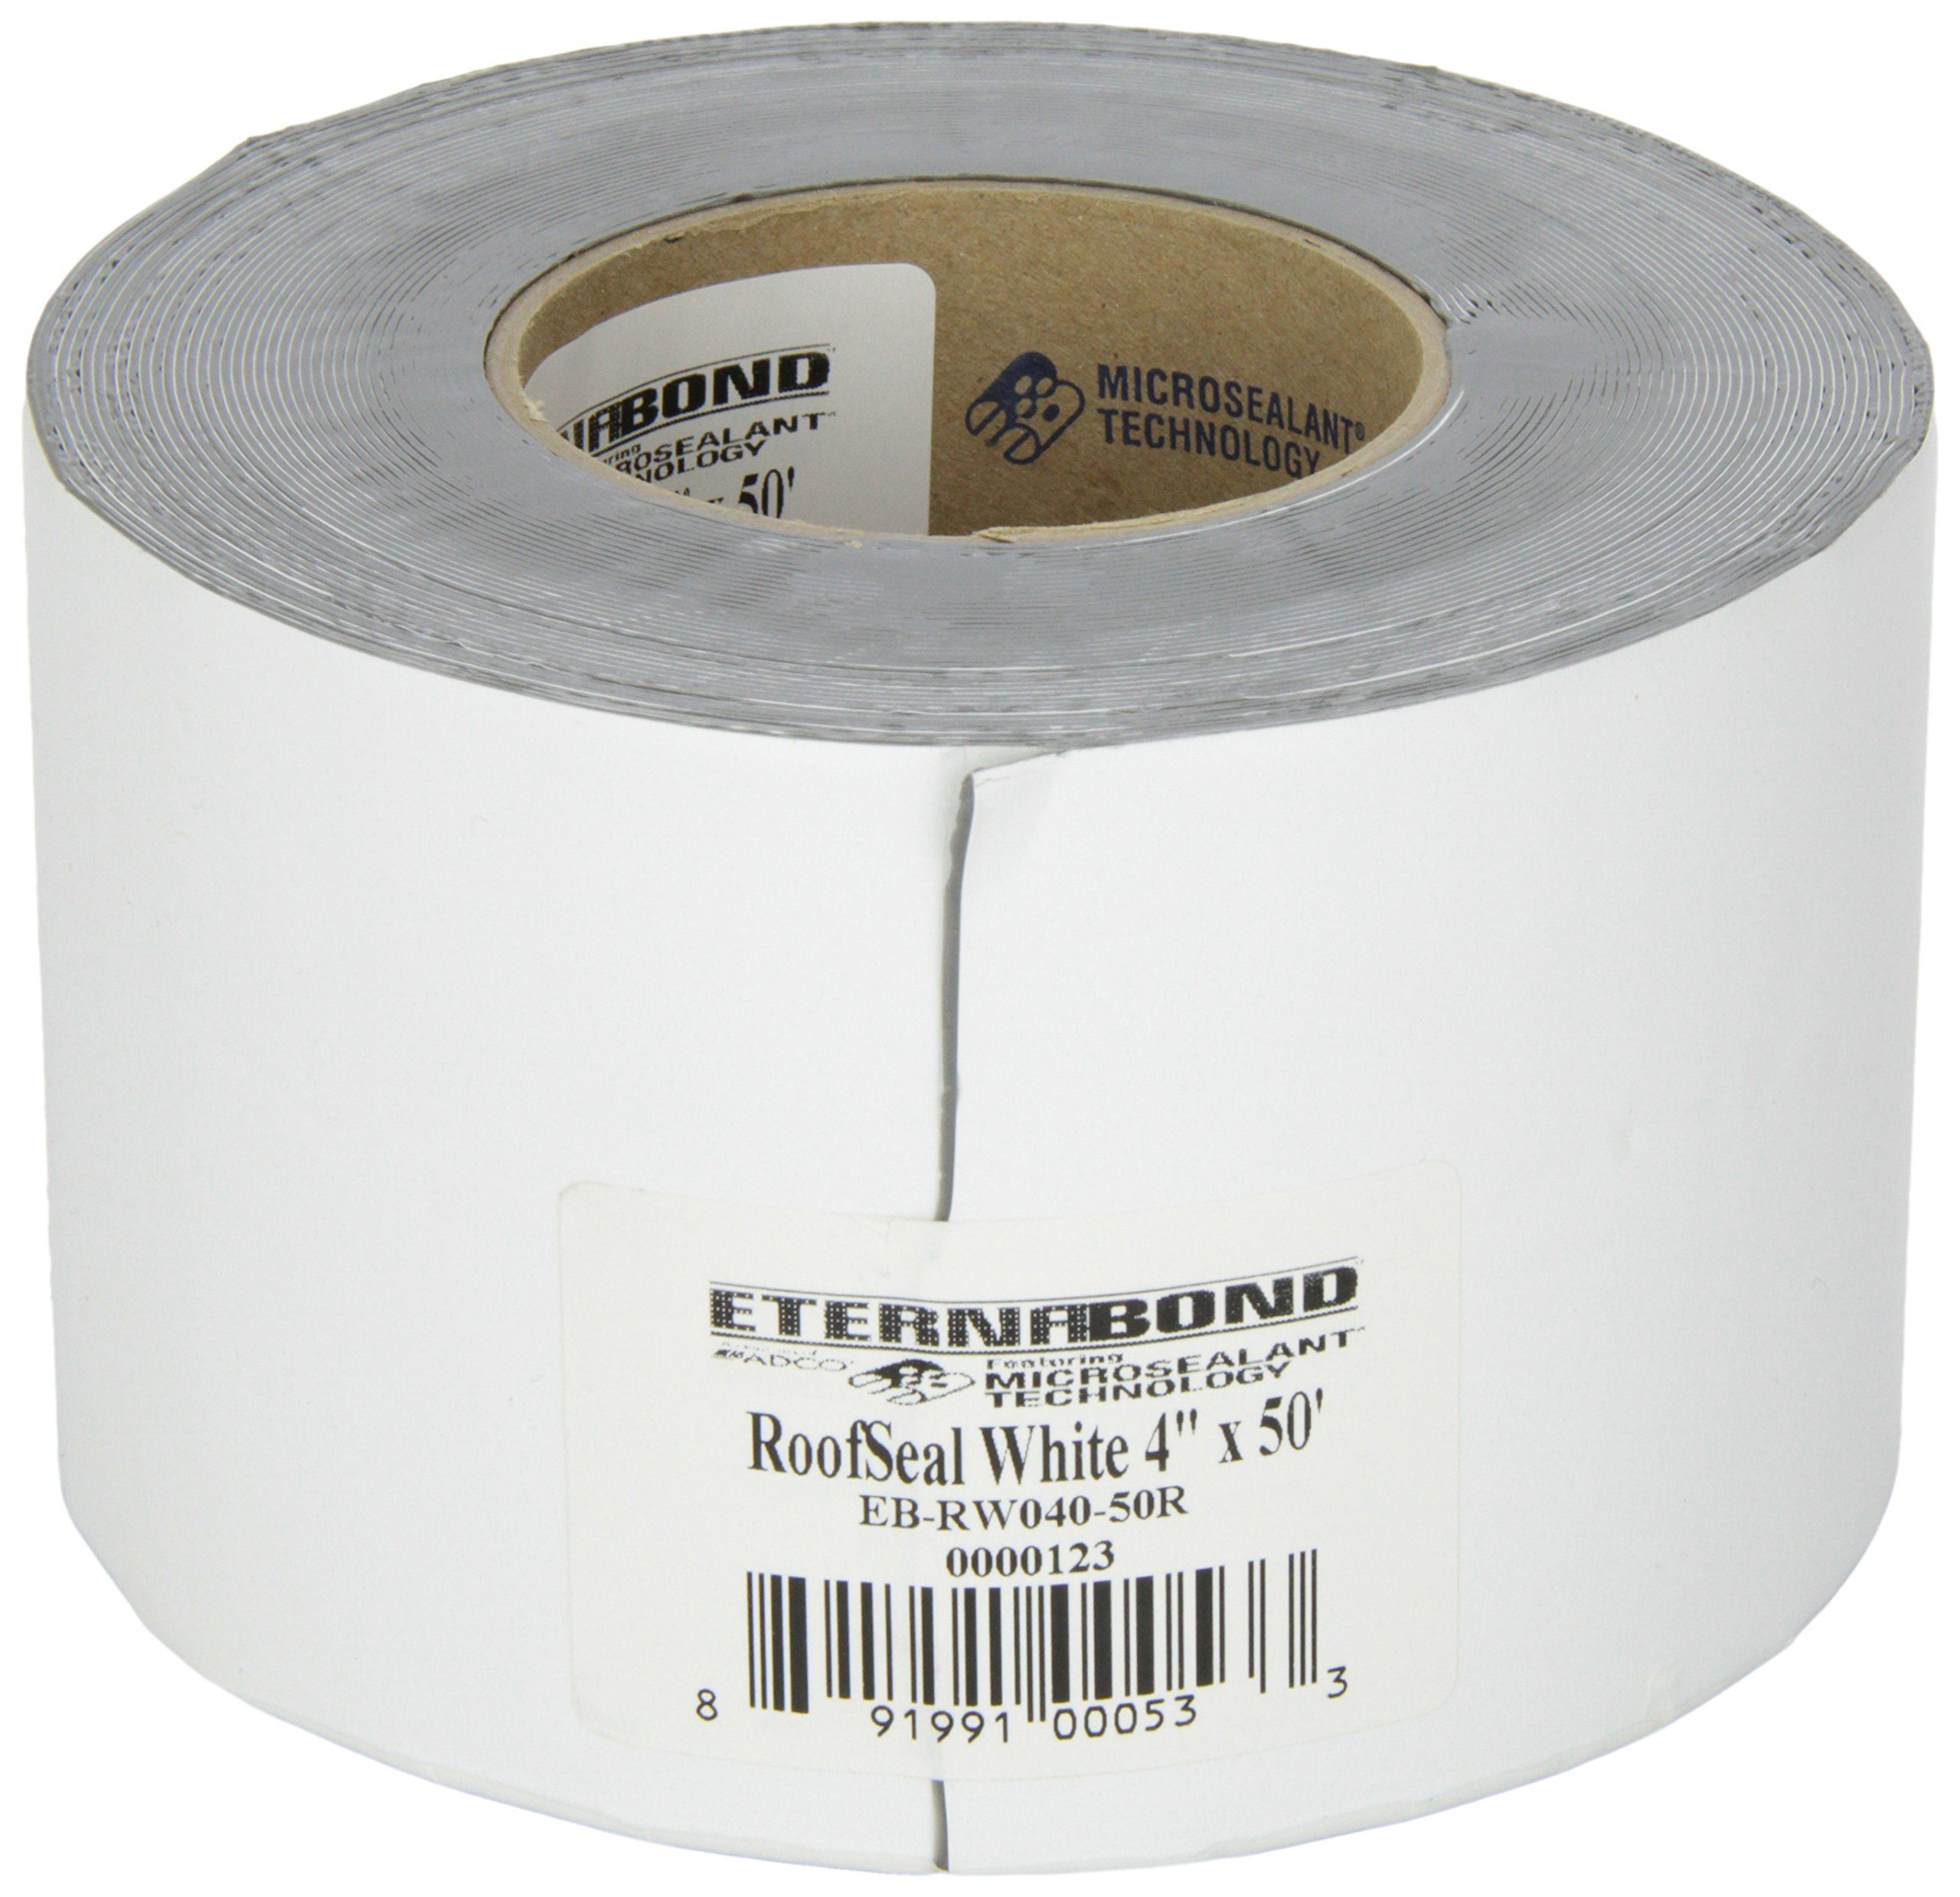 Eternabond Rsw 4 50 White Roof Seal Great For Leaks In